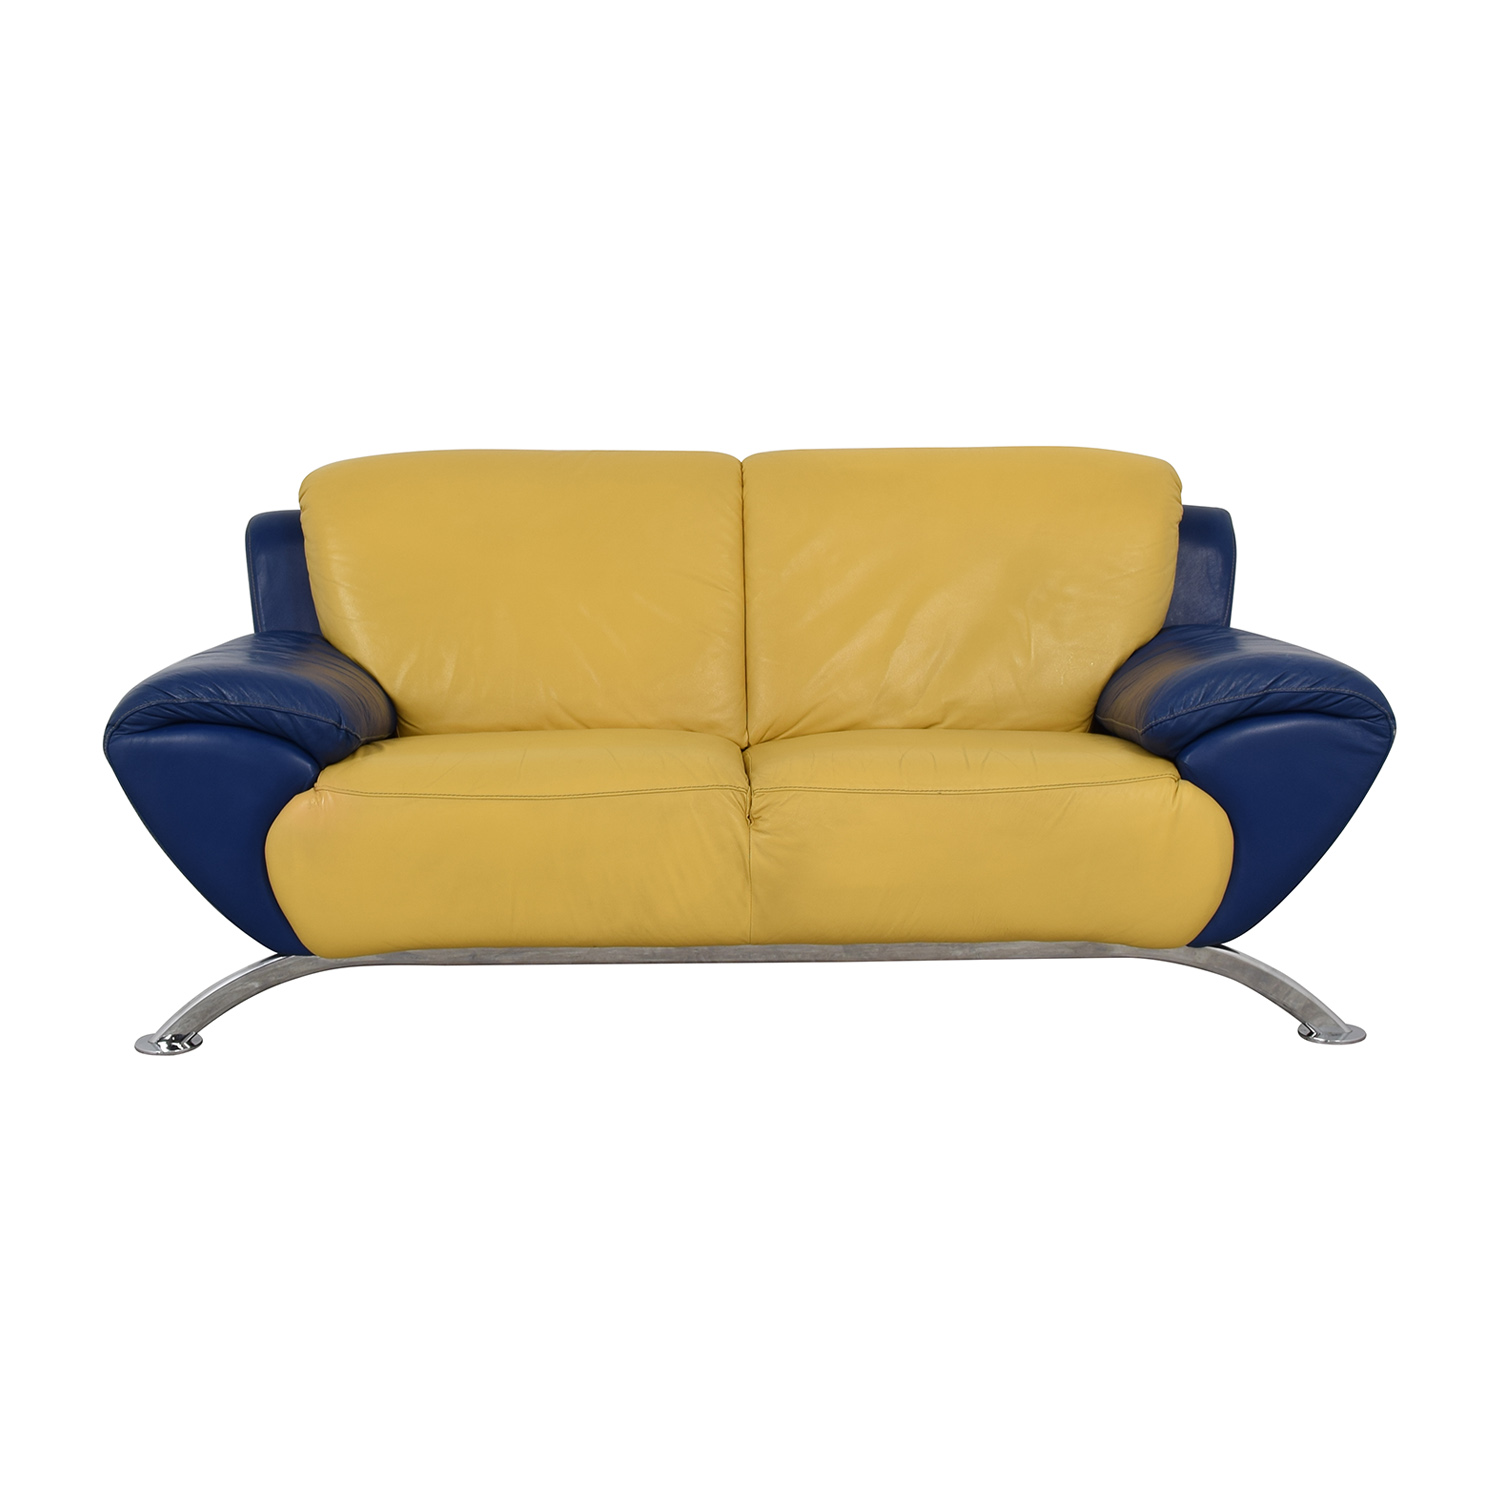 Yellow Modern Leather Sofas: Satis Satis Modern Yellow And Blue Leather Two